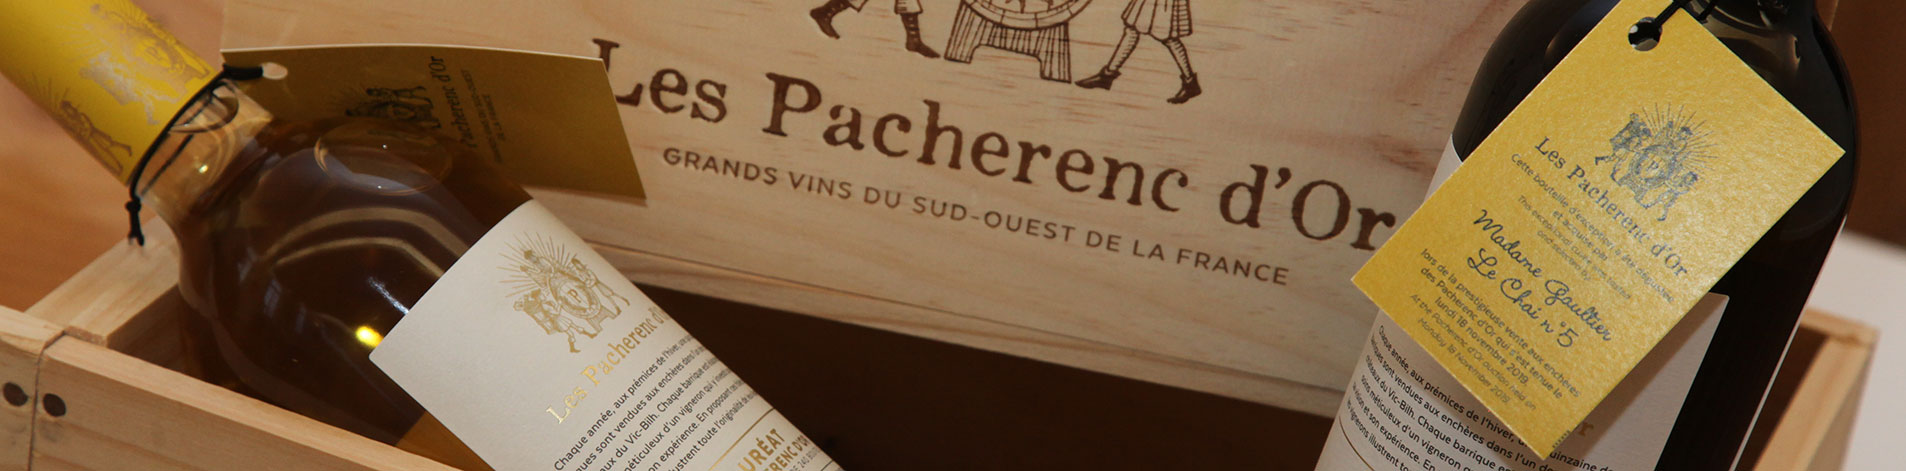 Les Pacherenc d'Or